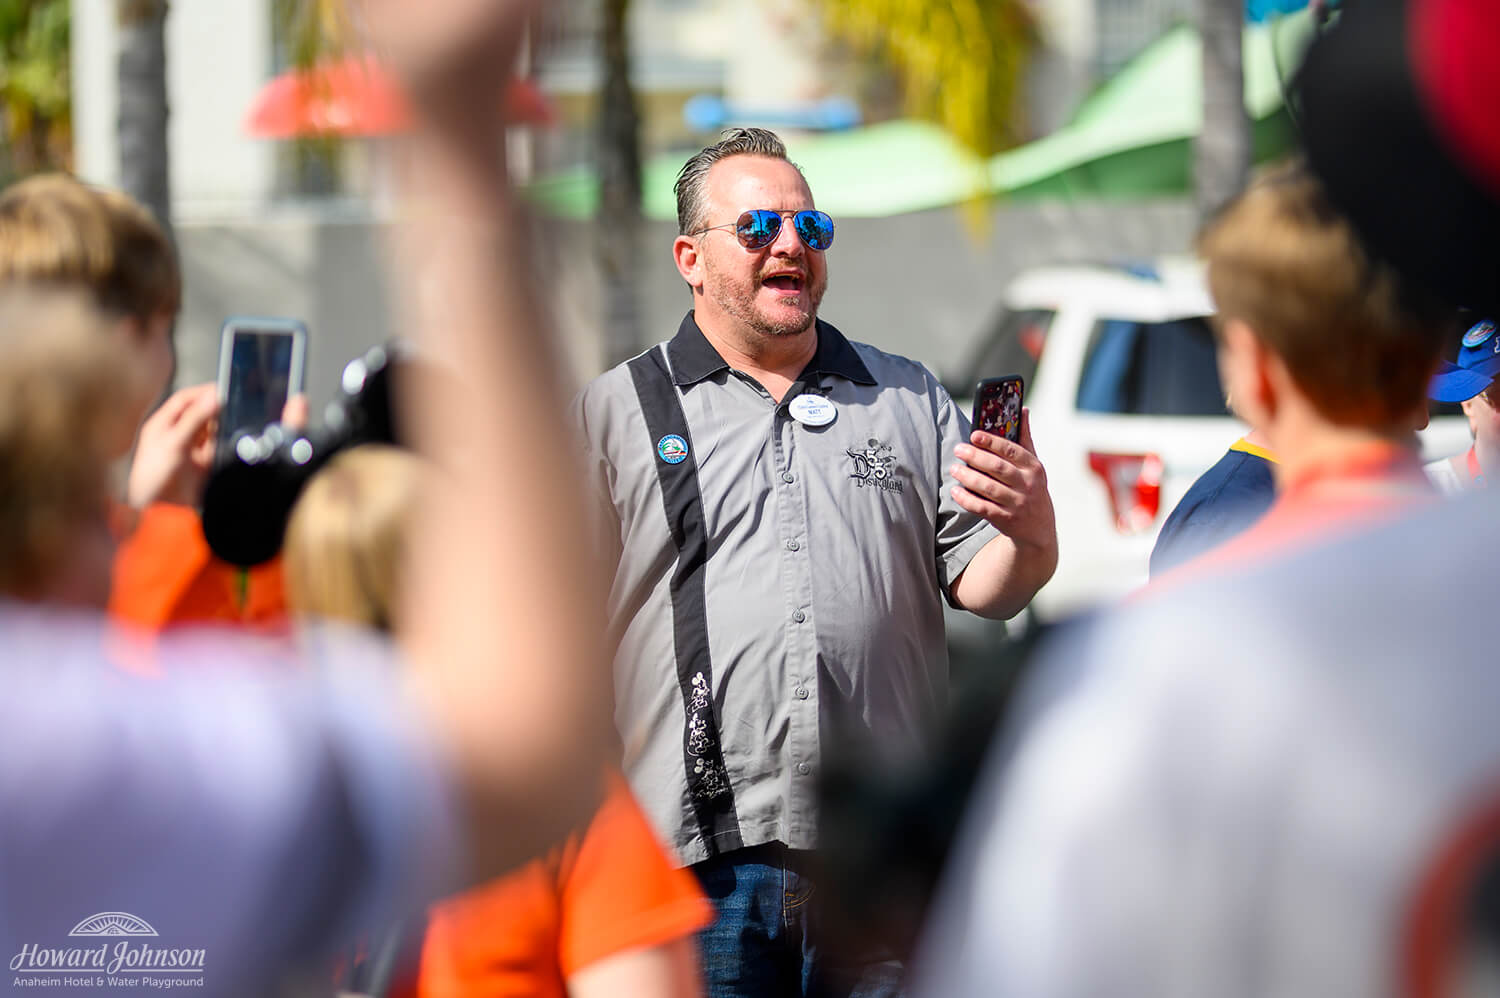 A man wearing sunglasses with his phone in his hands leads a group of people known as Mattercammers United